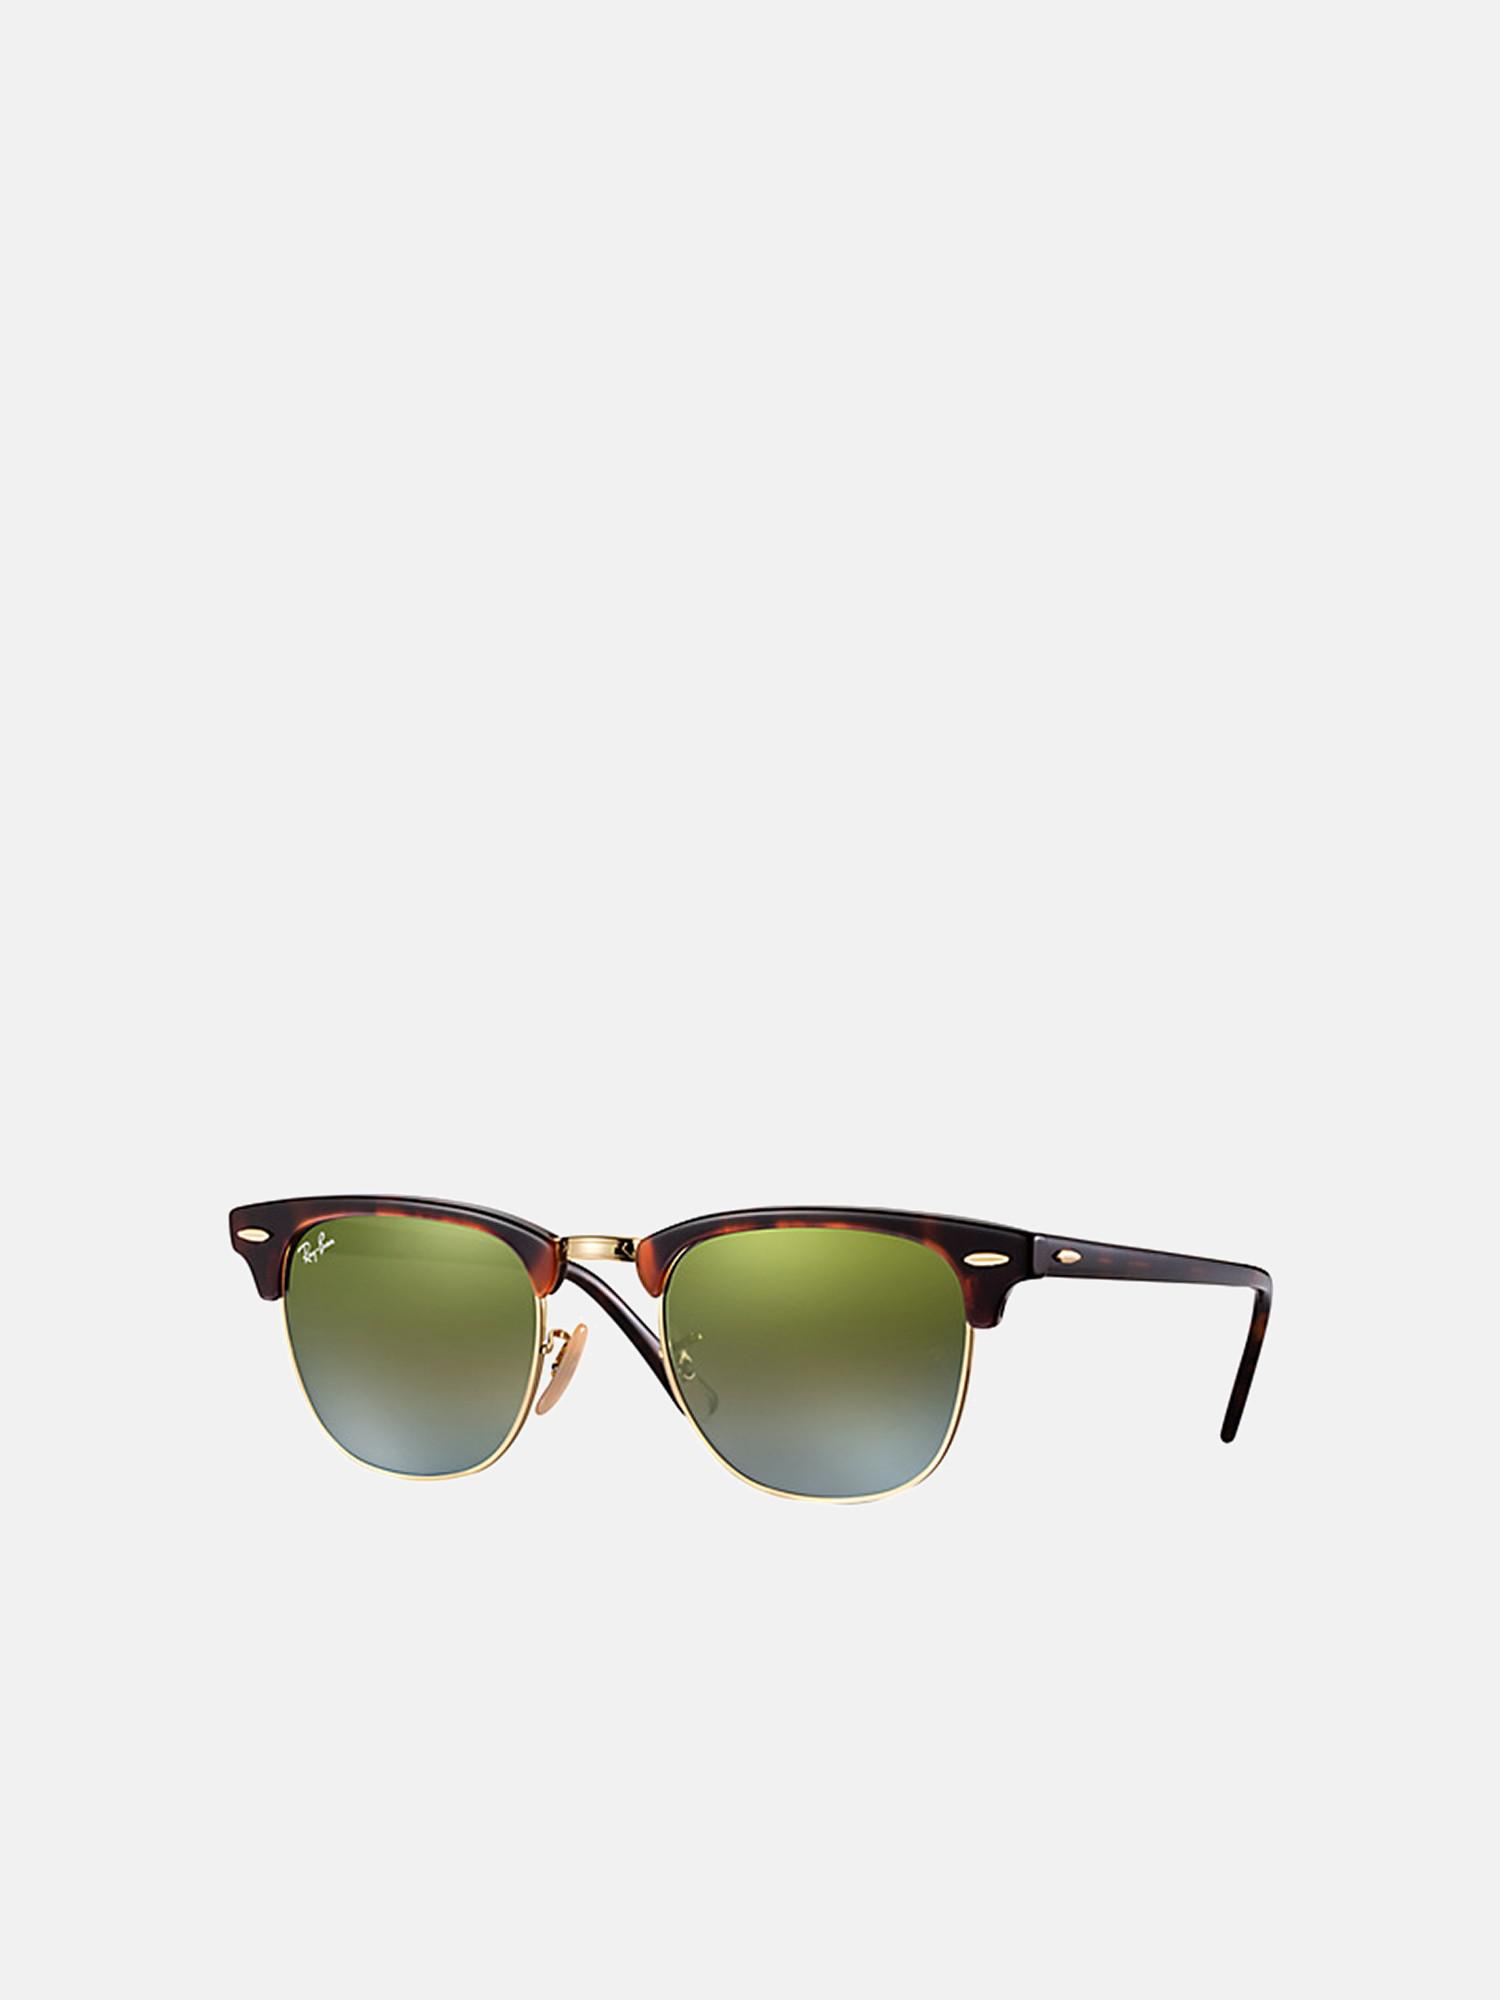 2c1cf758ab new style ray ban clubmaster rb3016 w0365 49 sunglasses hut 63221 0b03a